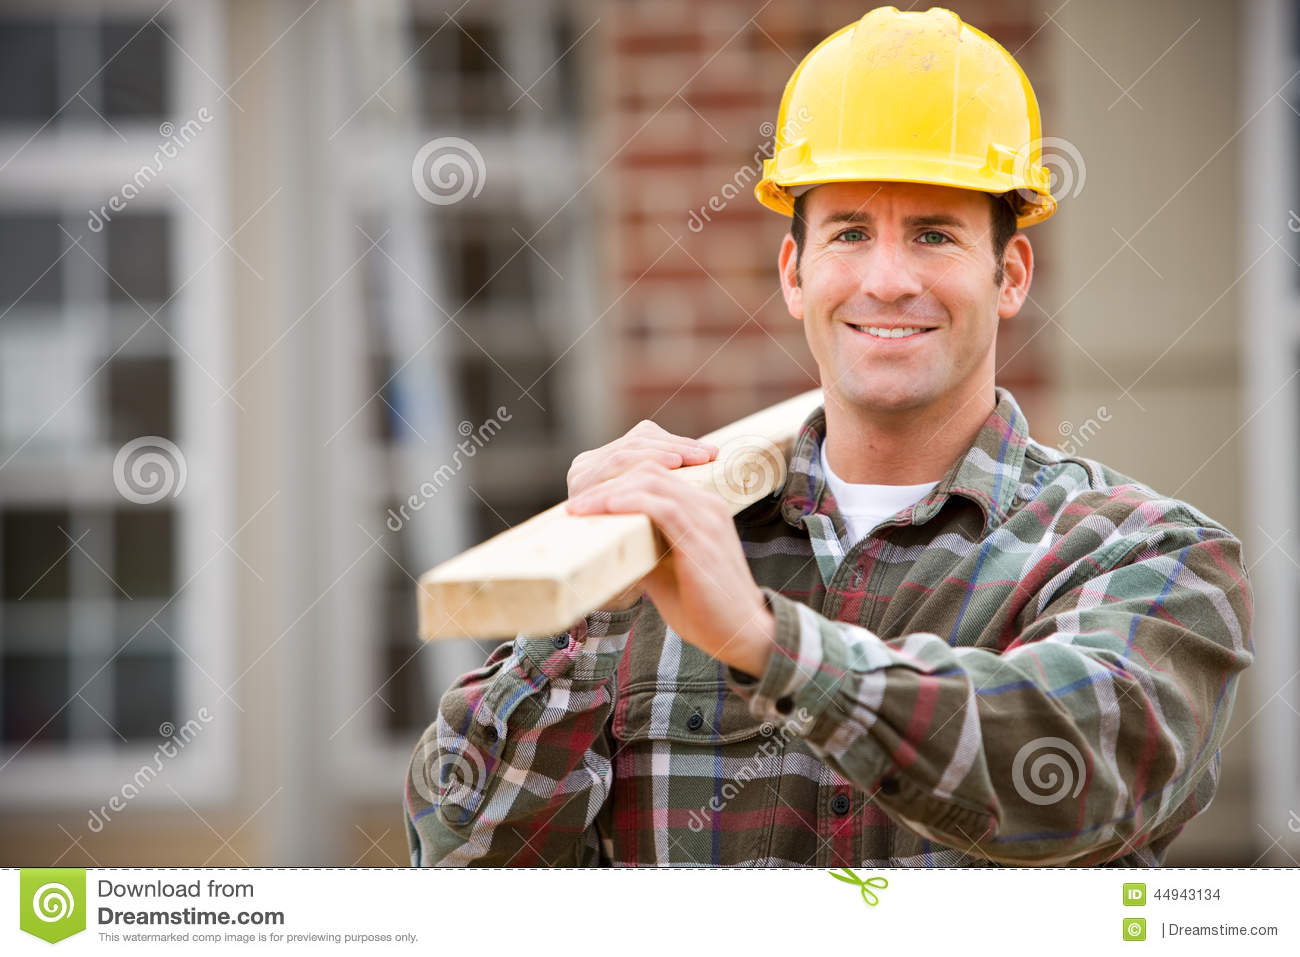 Construction: Cheerful Construction Worker